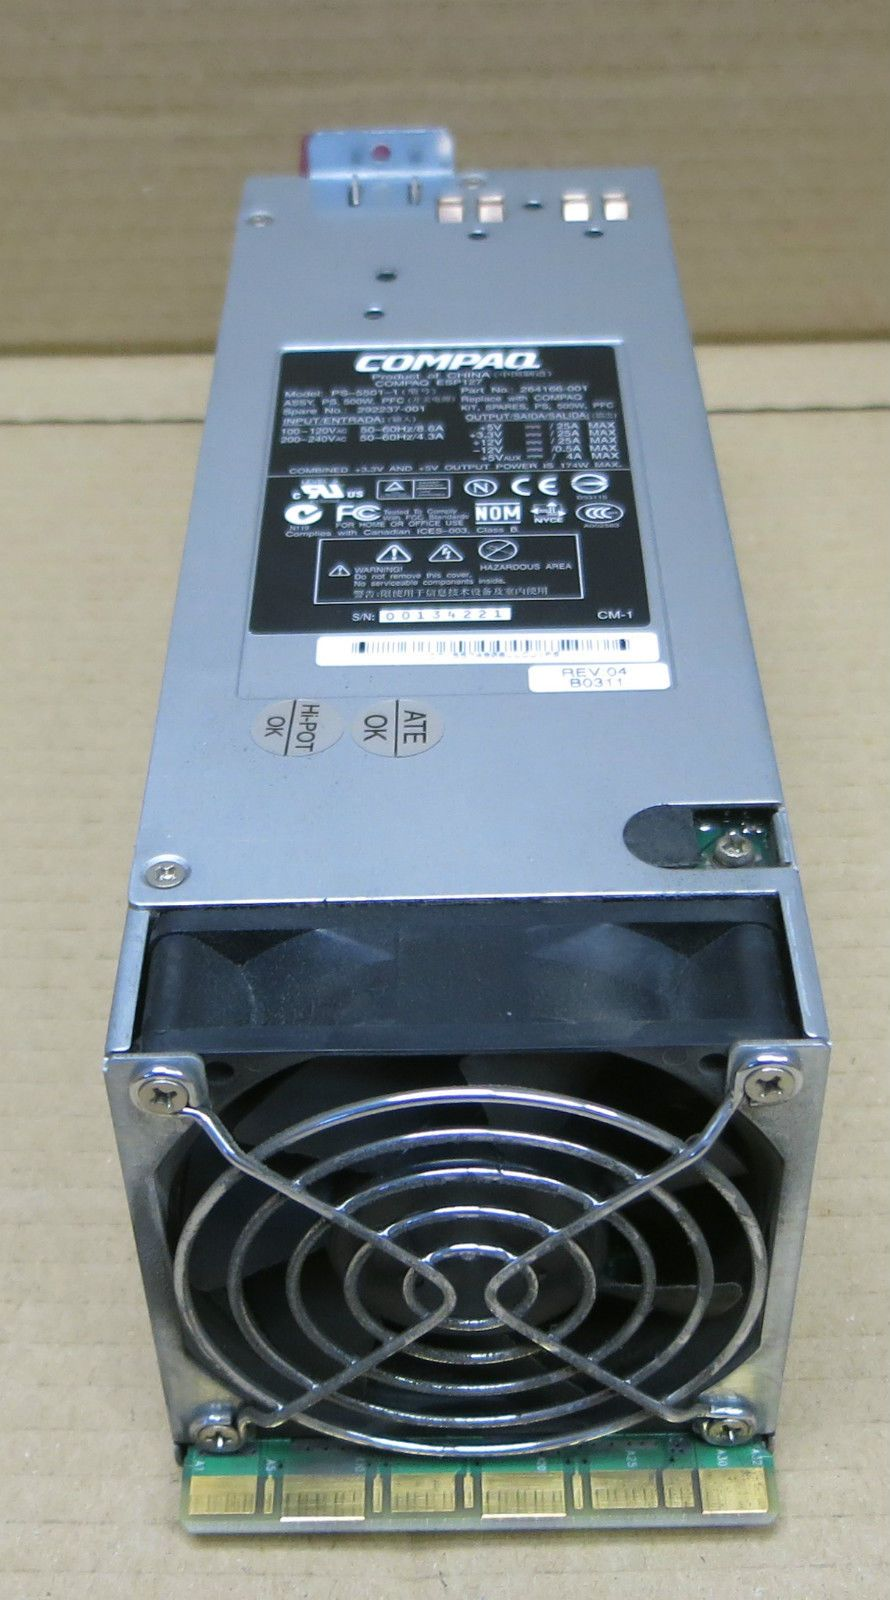 PS-5501-1 500W Power Supply PSU For ML350 G3 292237-001 264166-001